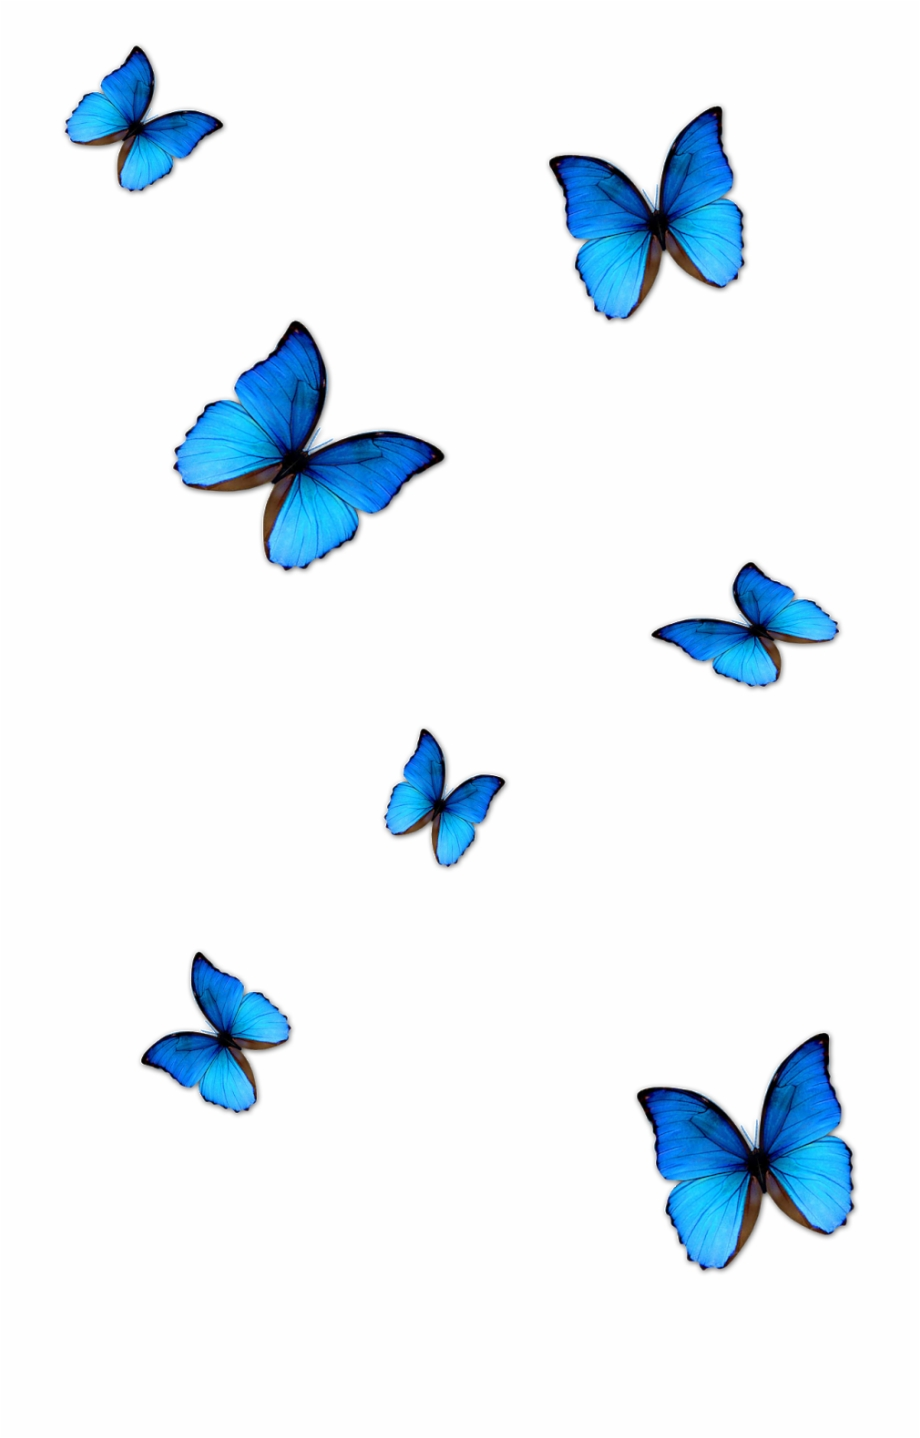 Kisspng Butterfly Blue Phengaris Alcon Blue Butterfly.